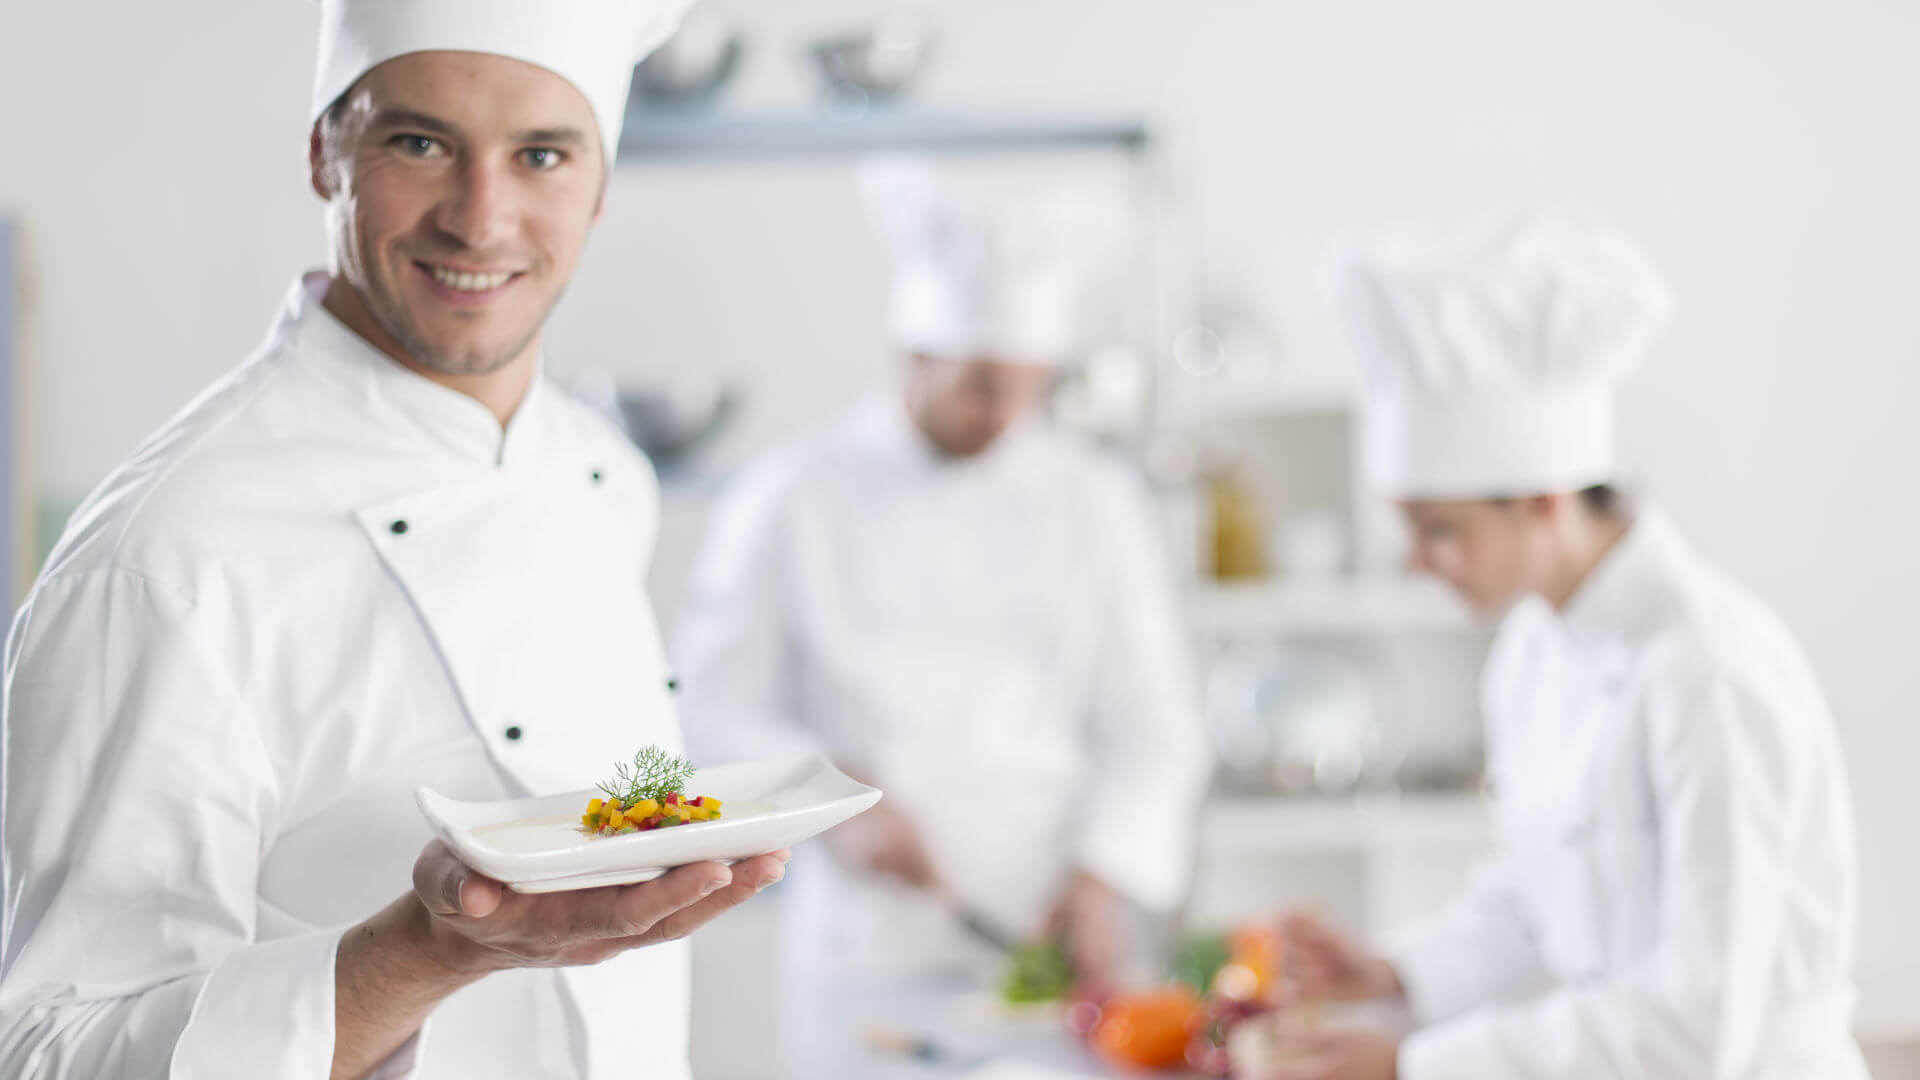 food service industry dating site The food industry is responsible for producing safe food government agencies are responsible for setting food safety standards, conducting inspections, and monitoring food products, including imports.